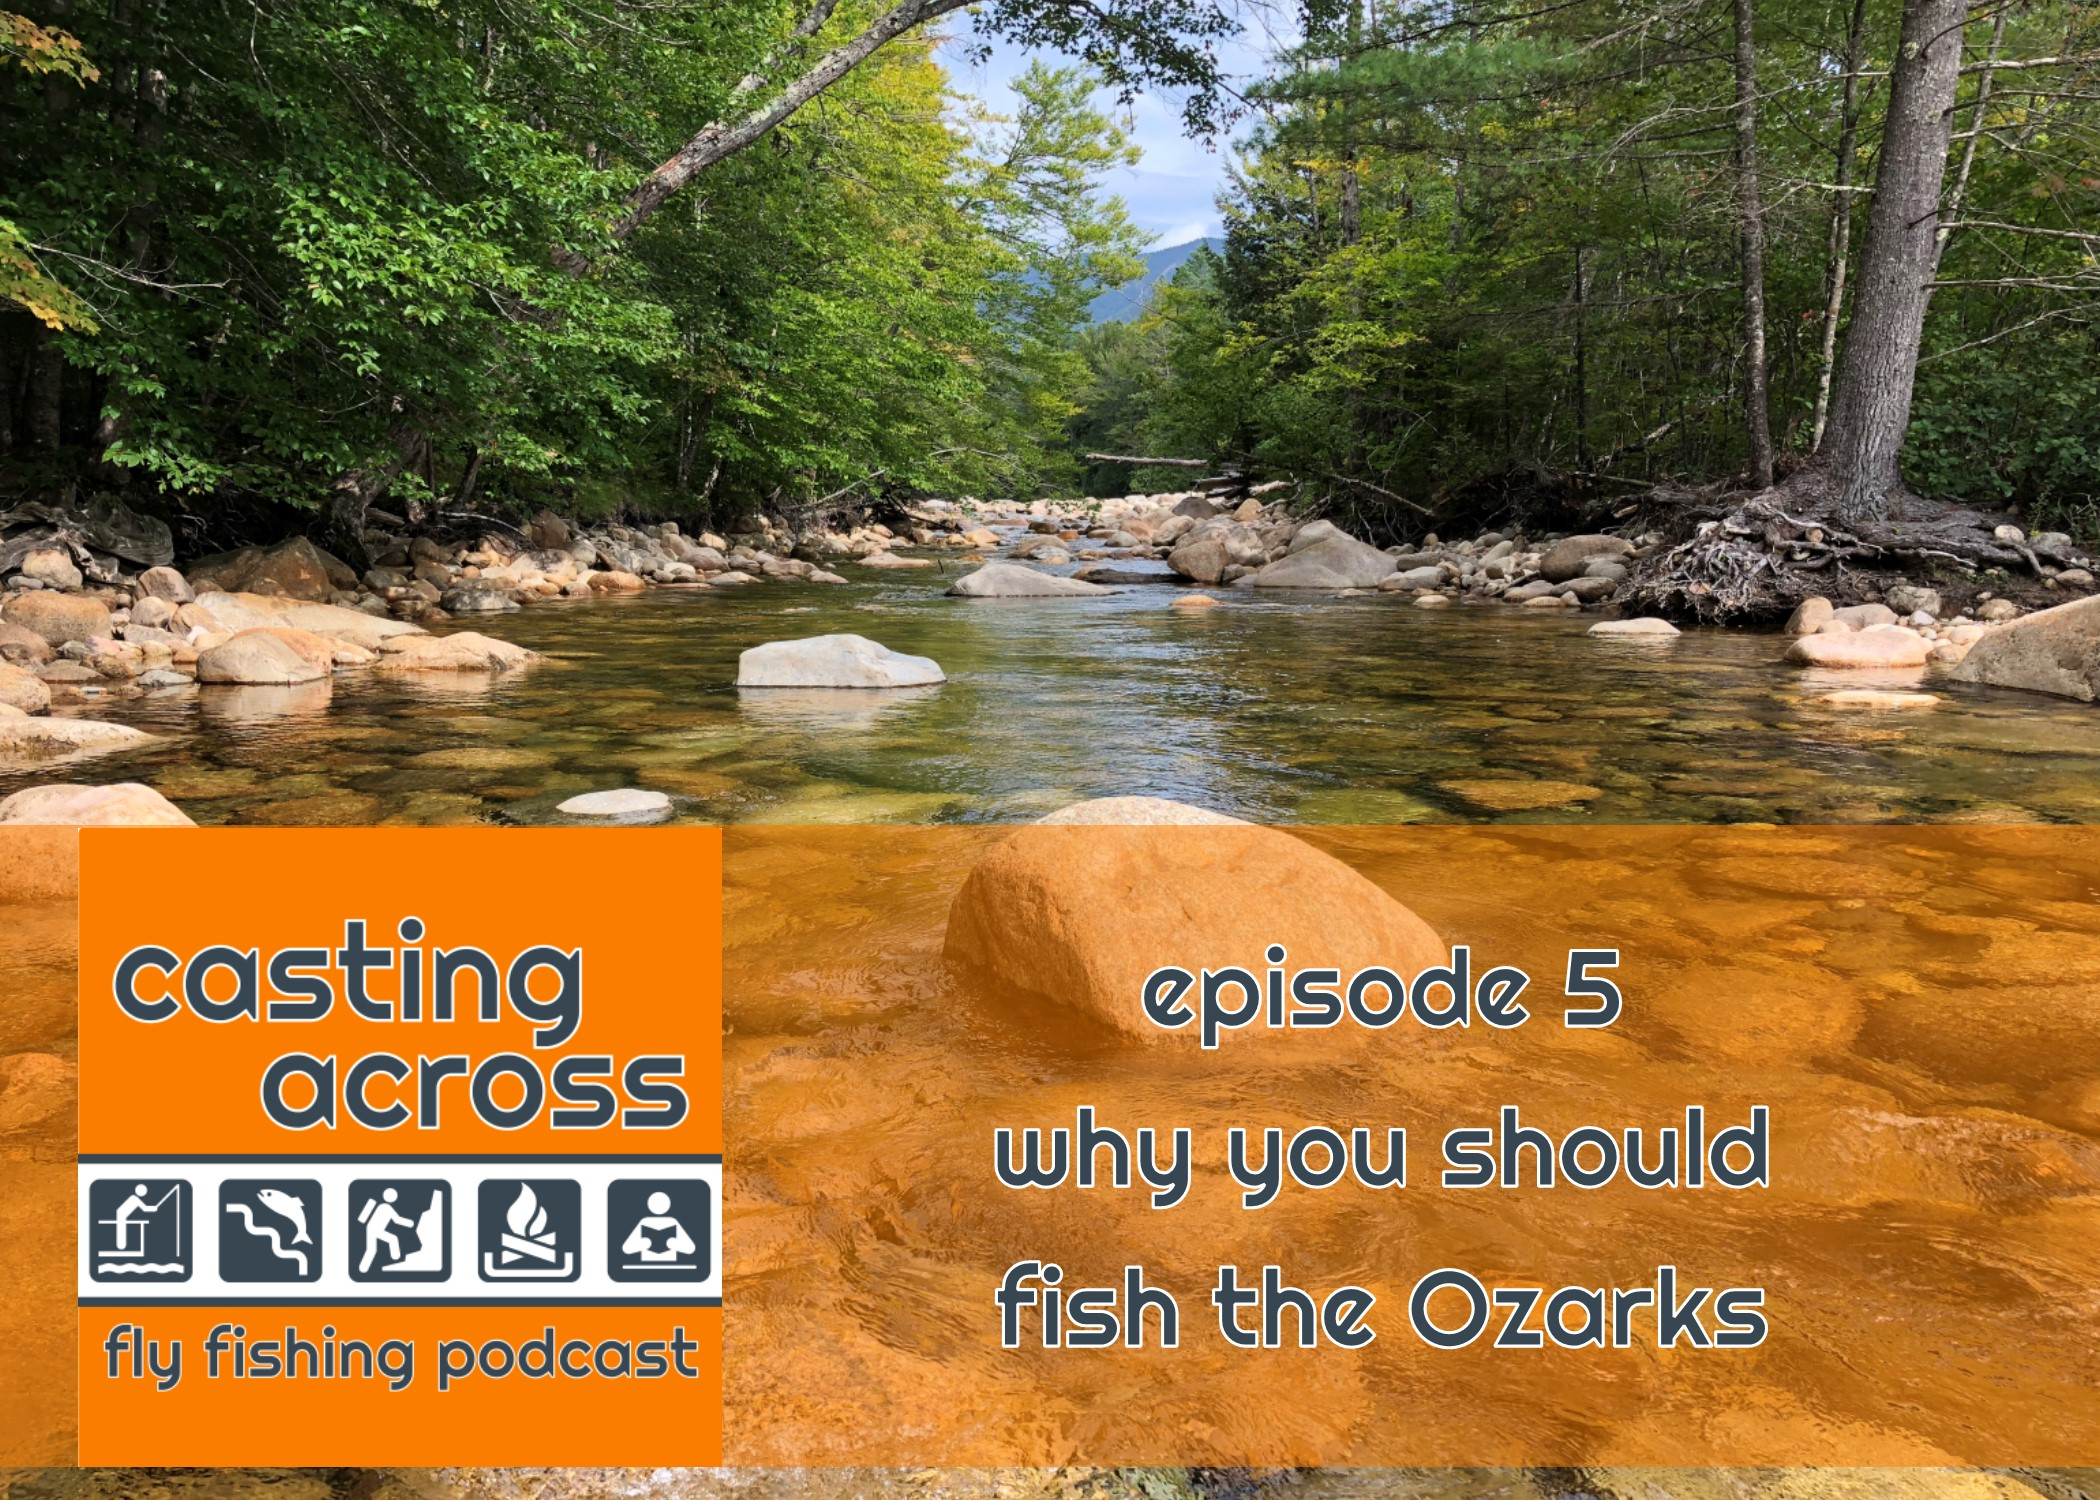 Podcast Ep. 5: Why You Should Fish the Ozarks